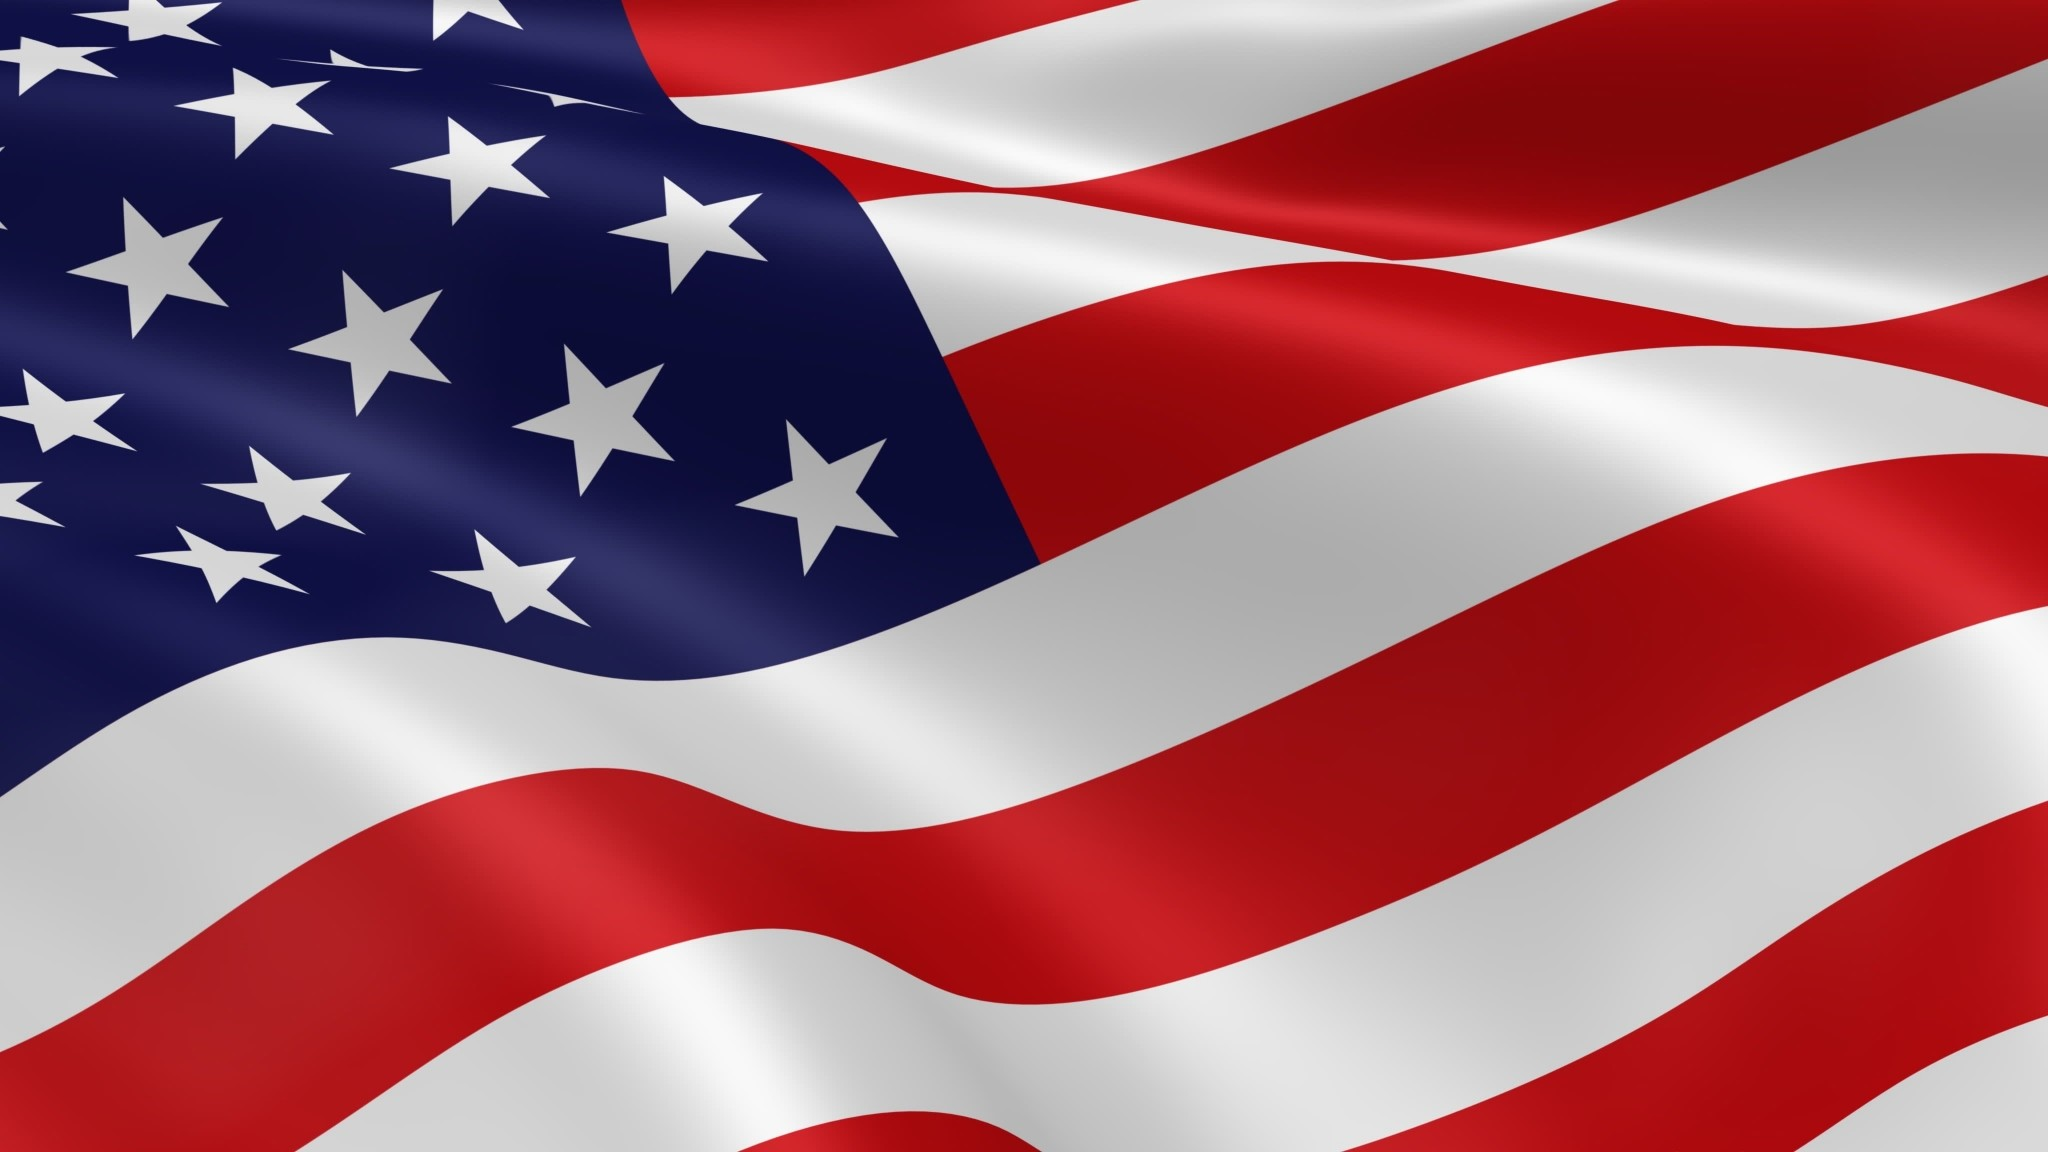 Flag Desktop Background: American Flag Wallpaper Background (59+ Images